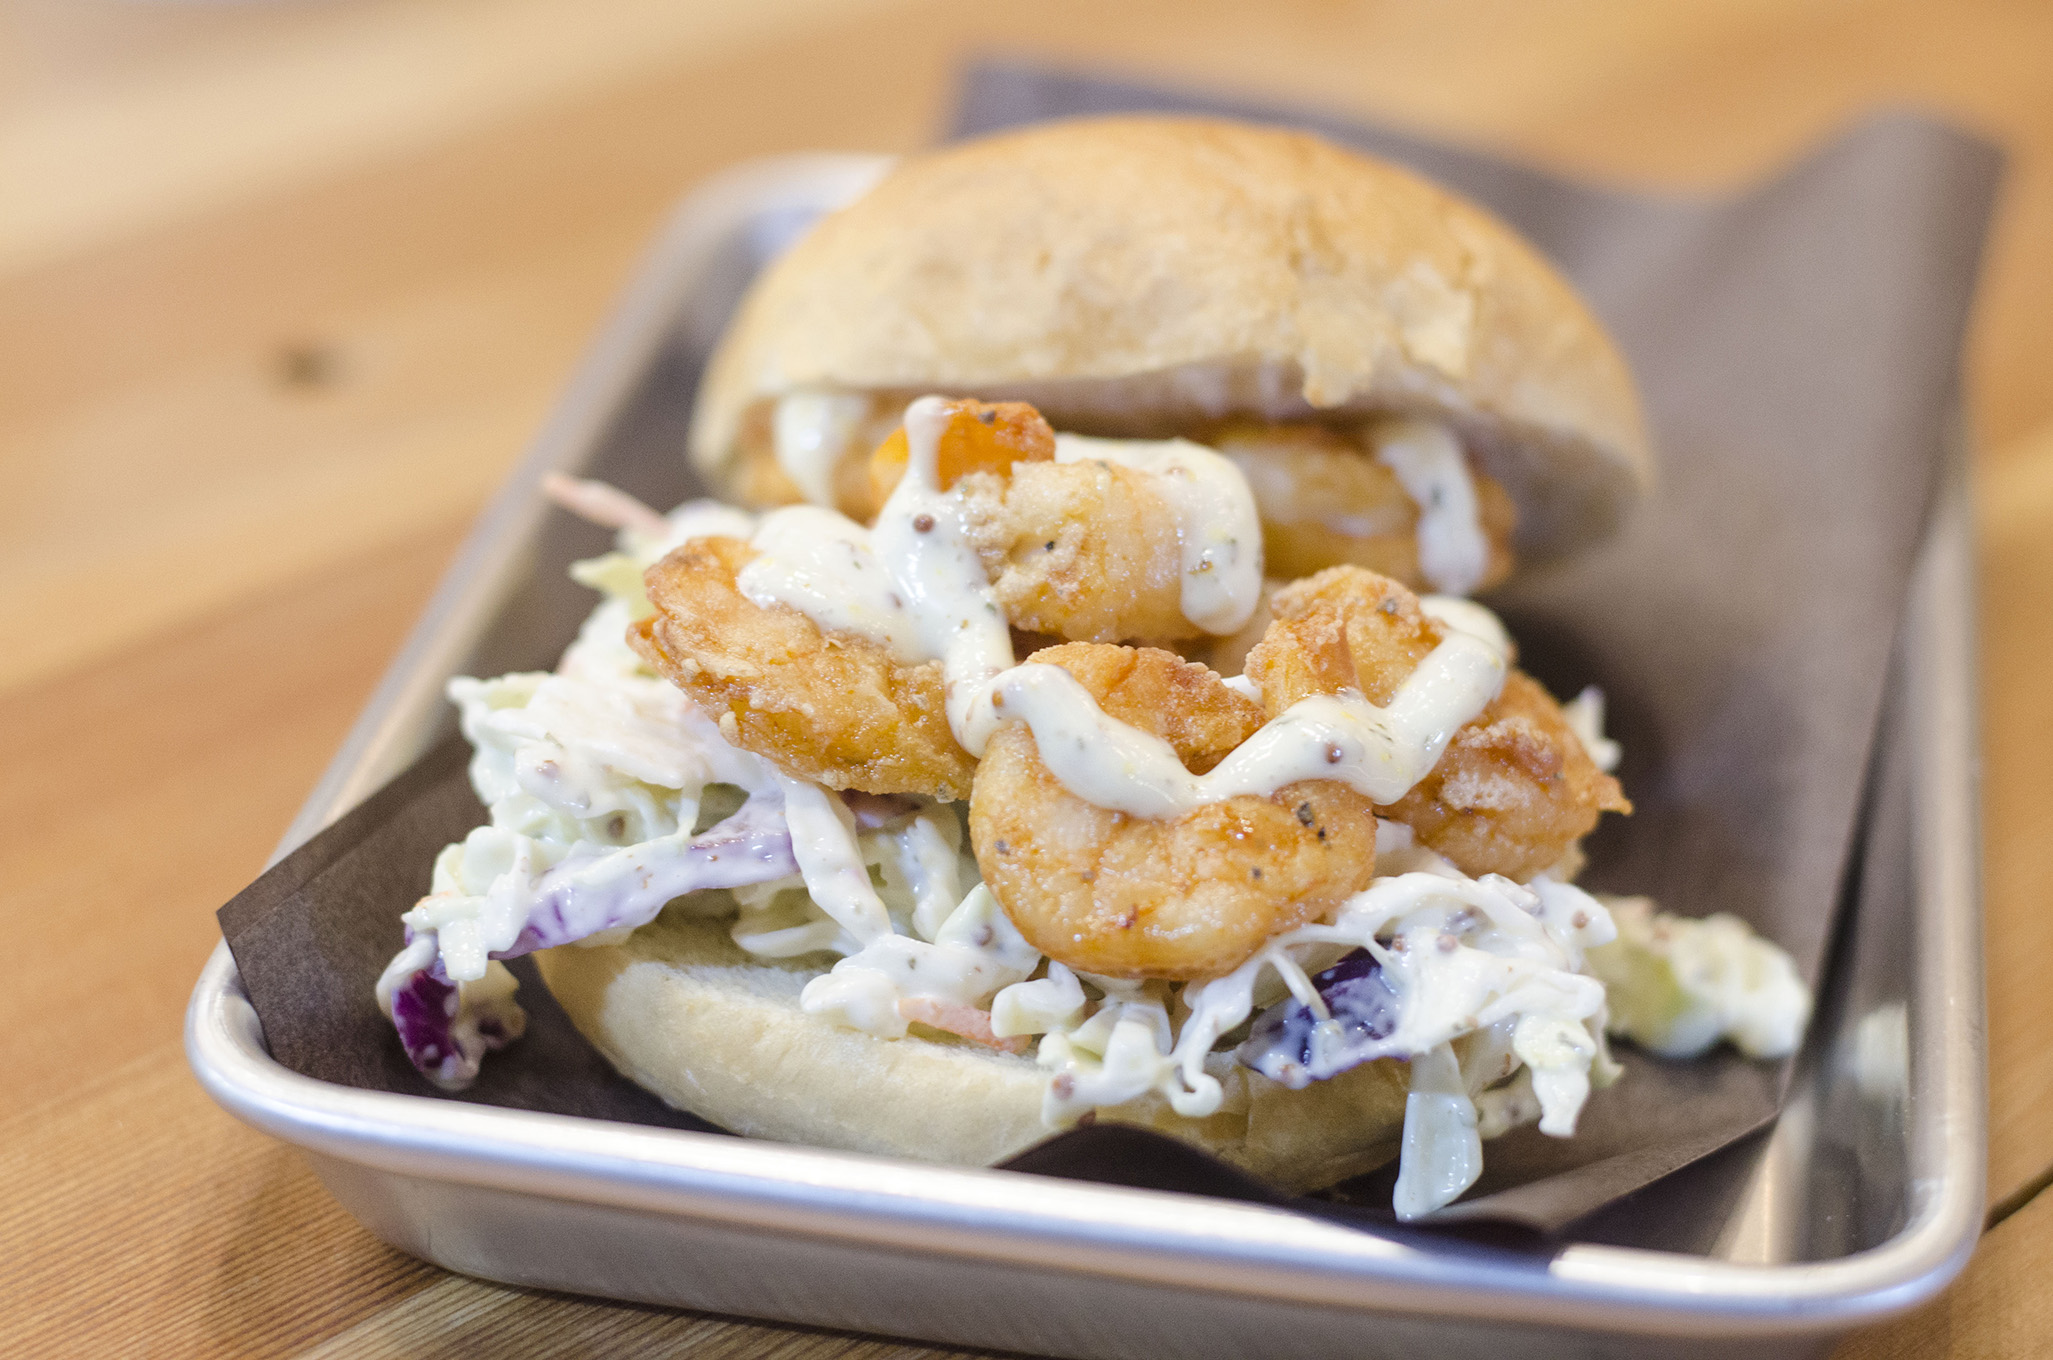 The Crispy Chicken Shrimp Poor Boy sandwich from Chapter Two Brewing Company in Windsor, Ontario.